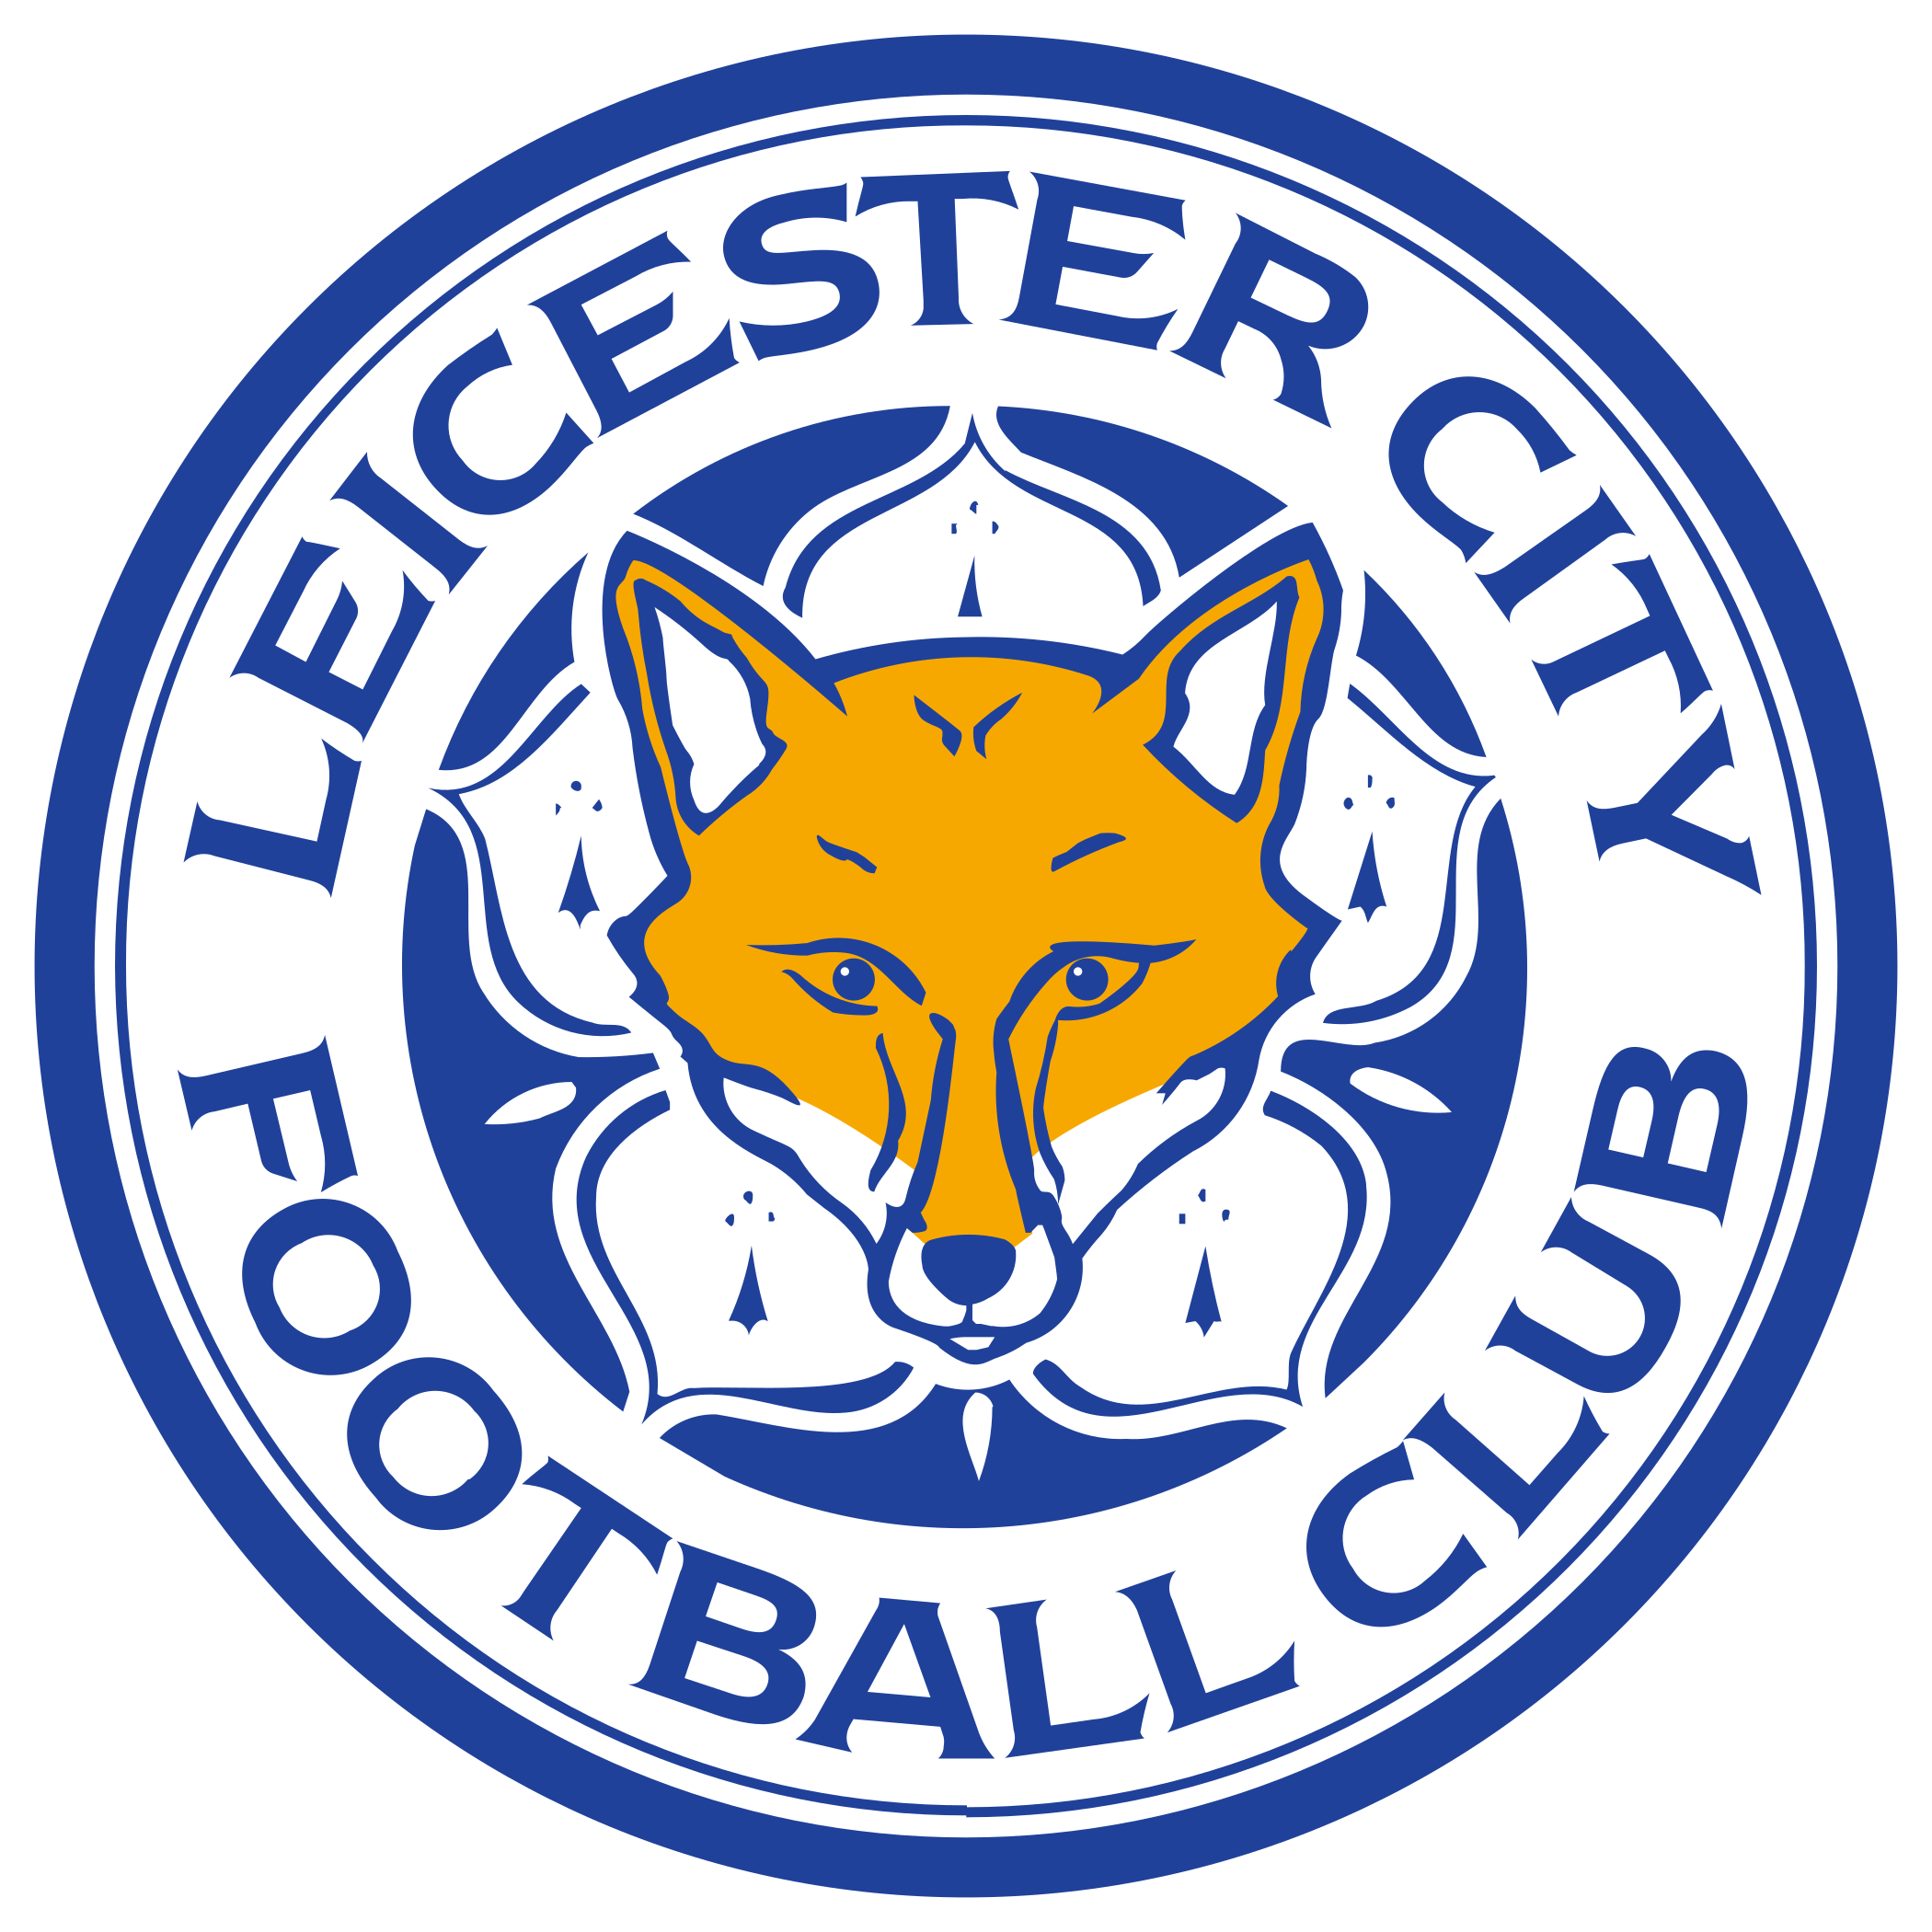 leicester city logo.